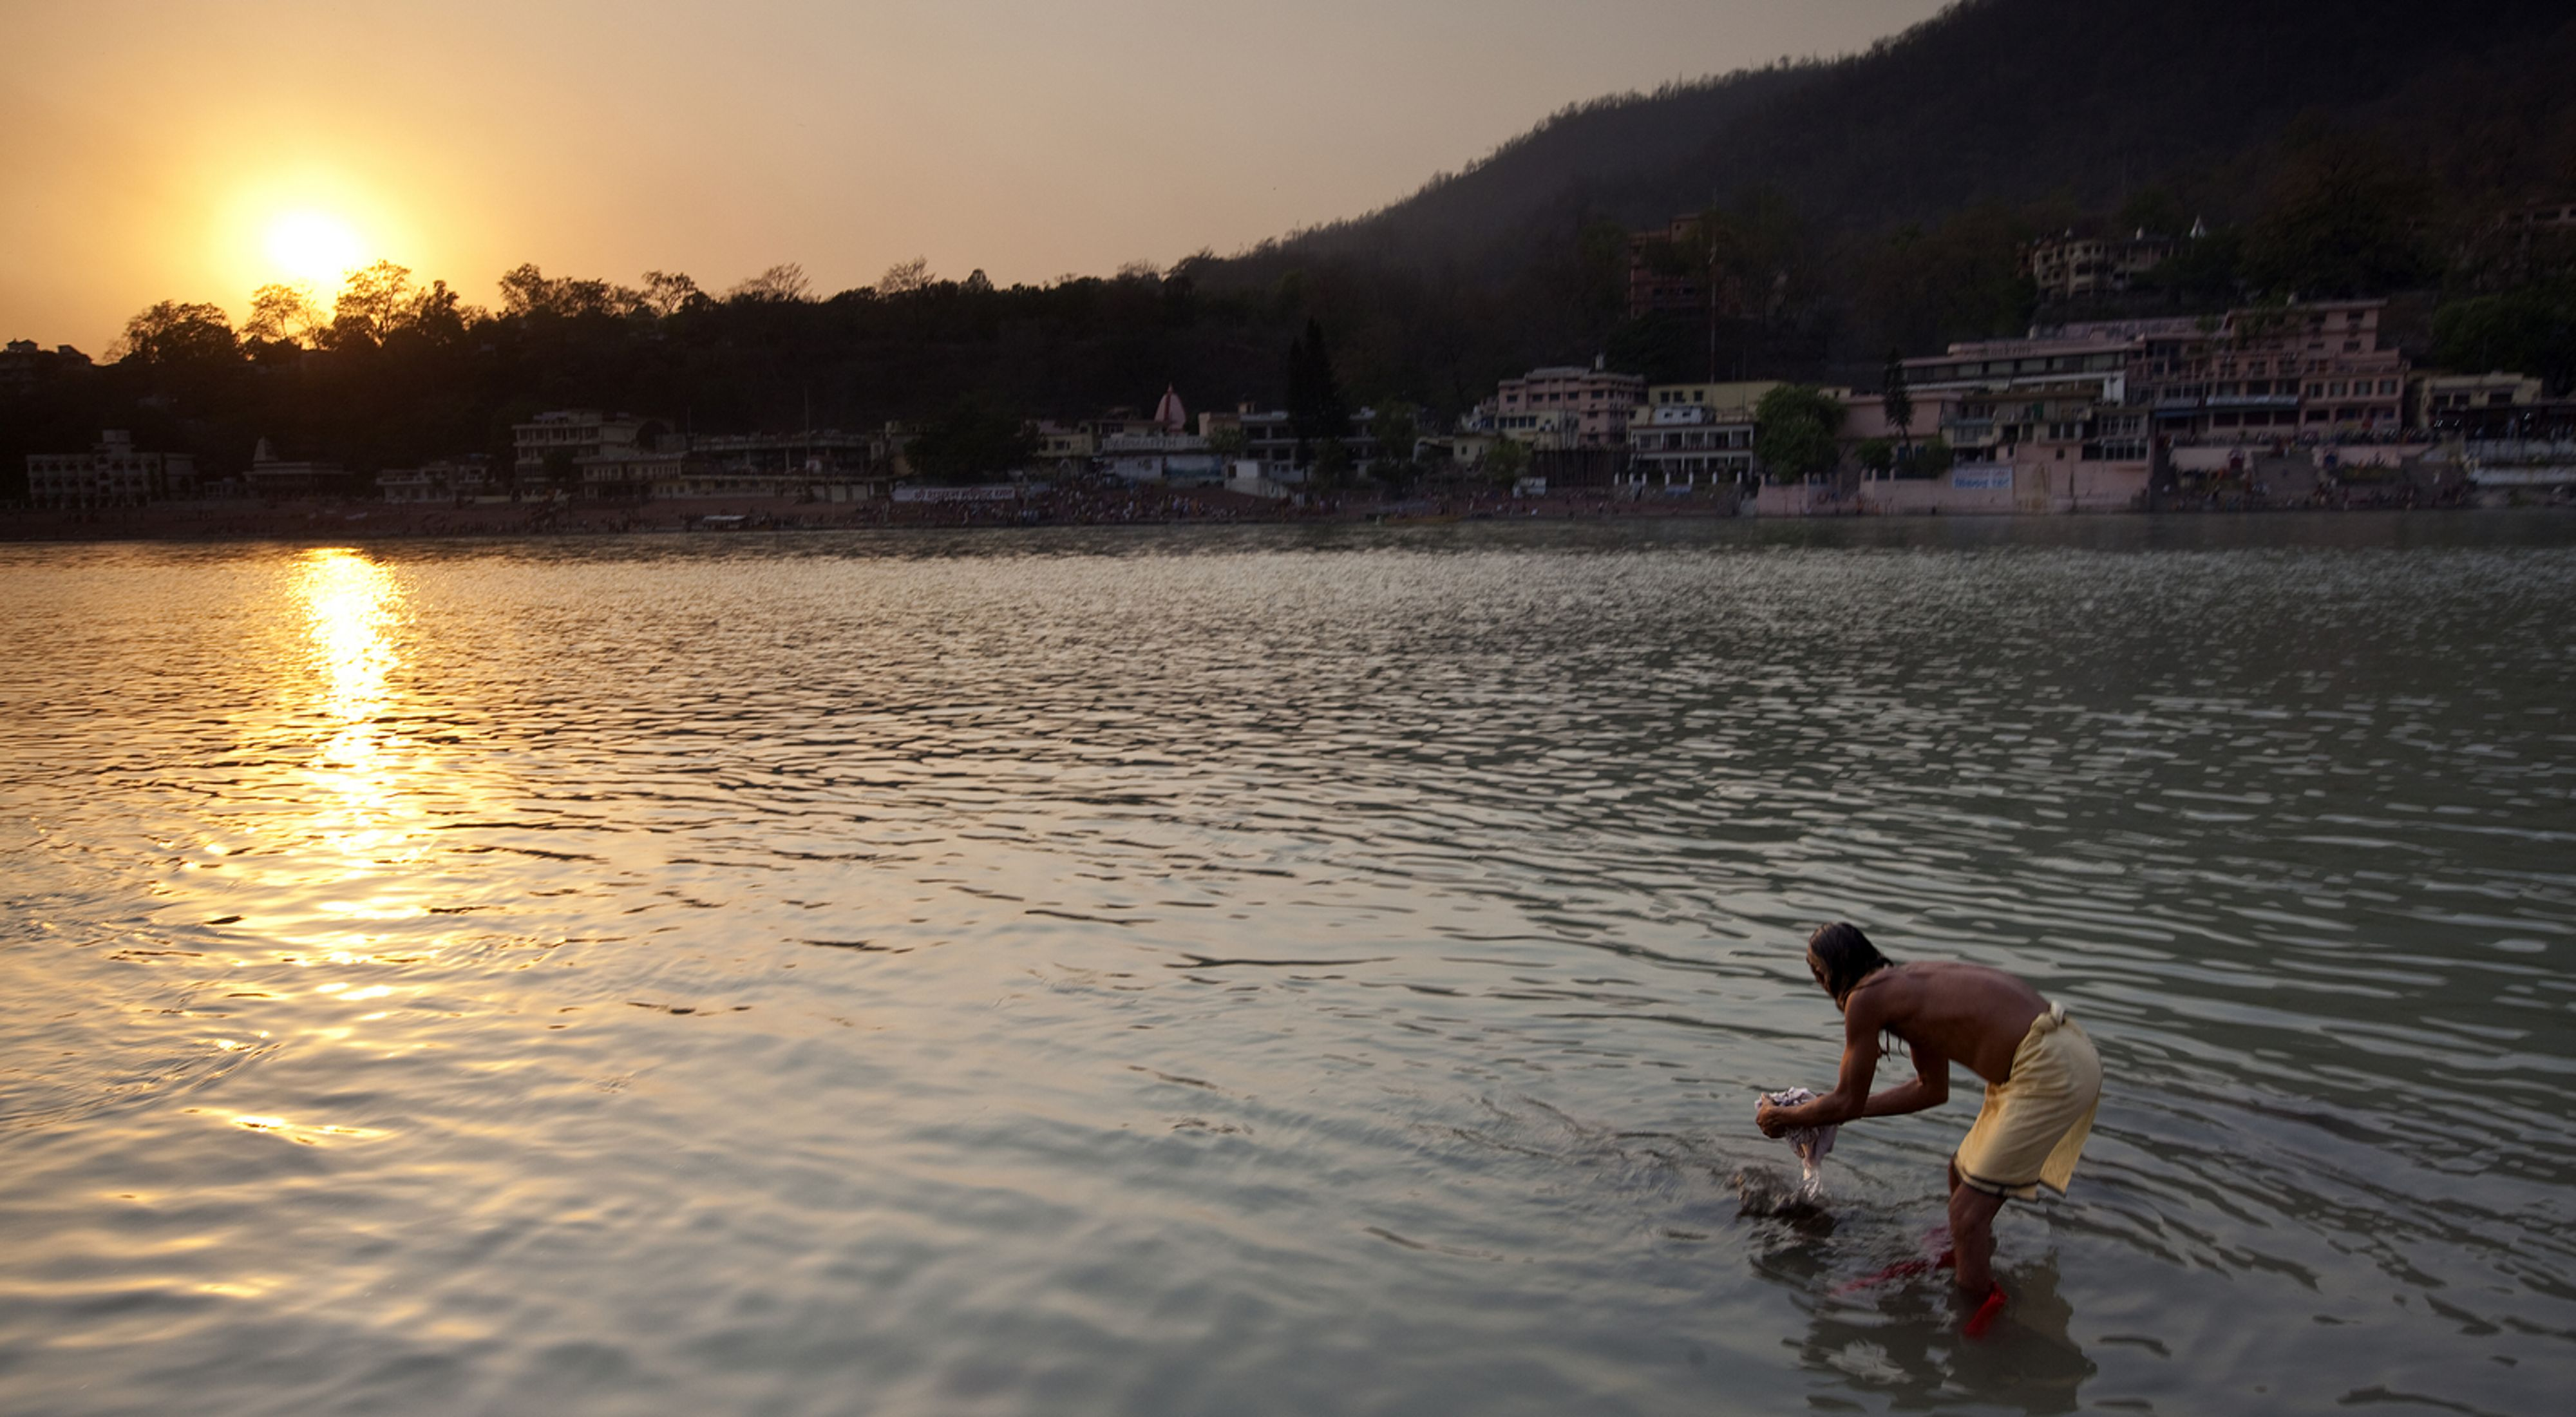 In Rishikesh, India, pilgrims bathe and gather at the Ganges River as part of the Kumbh Mela gathering.